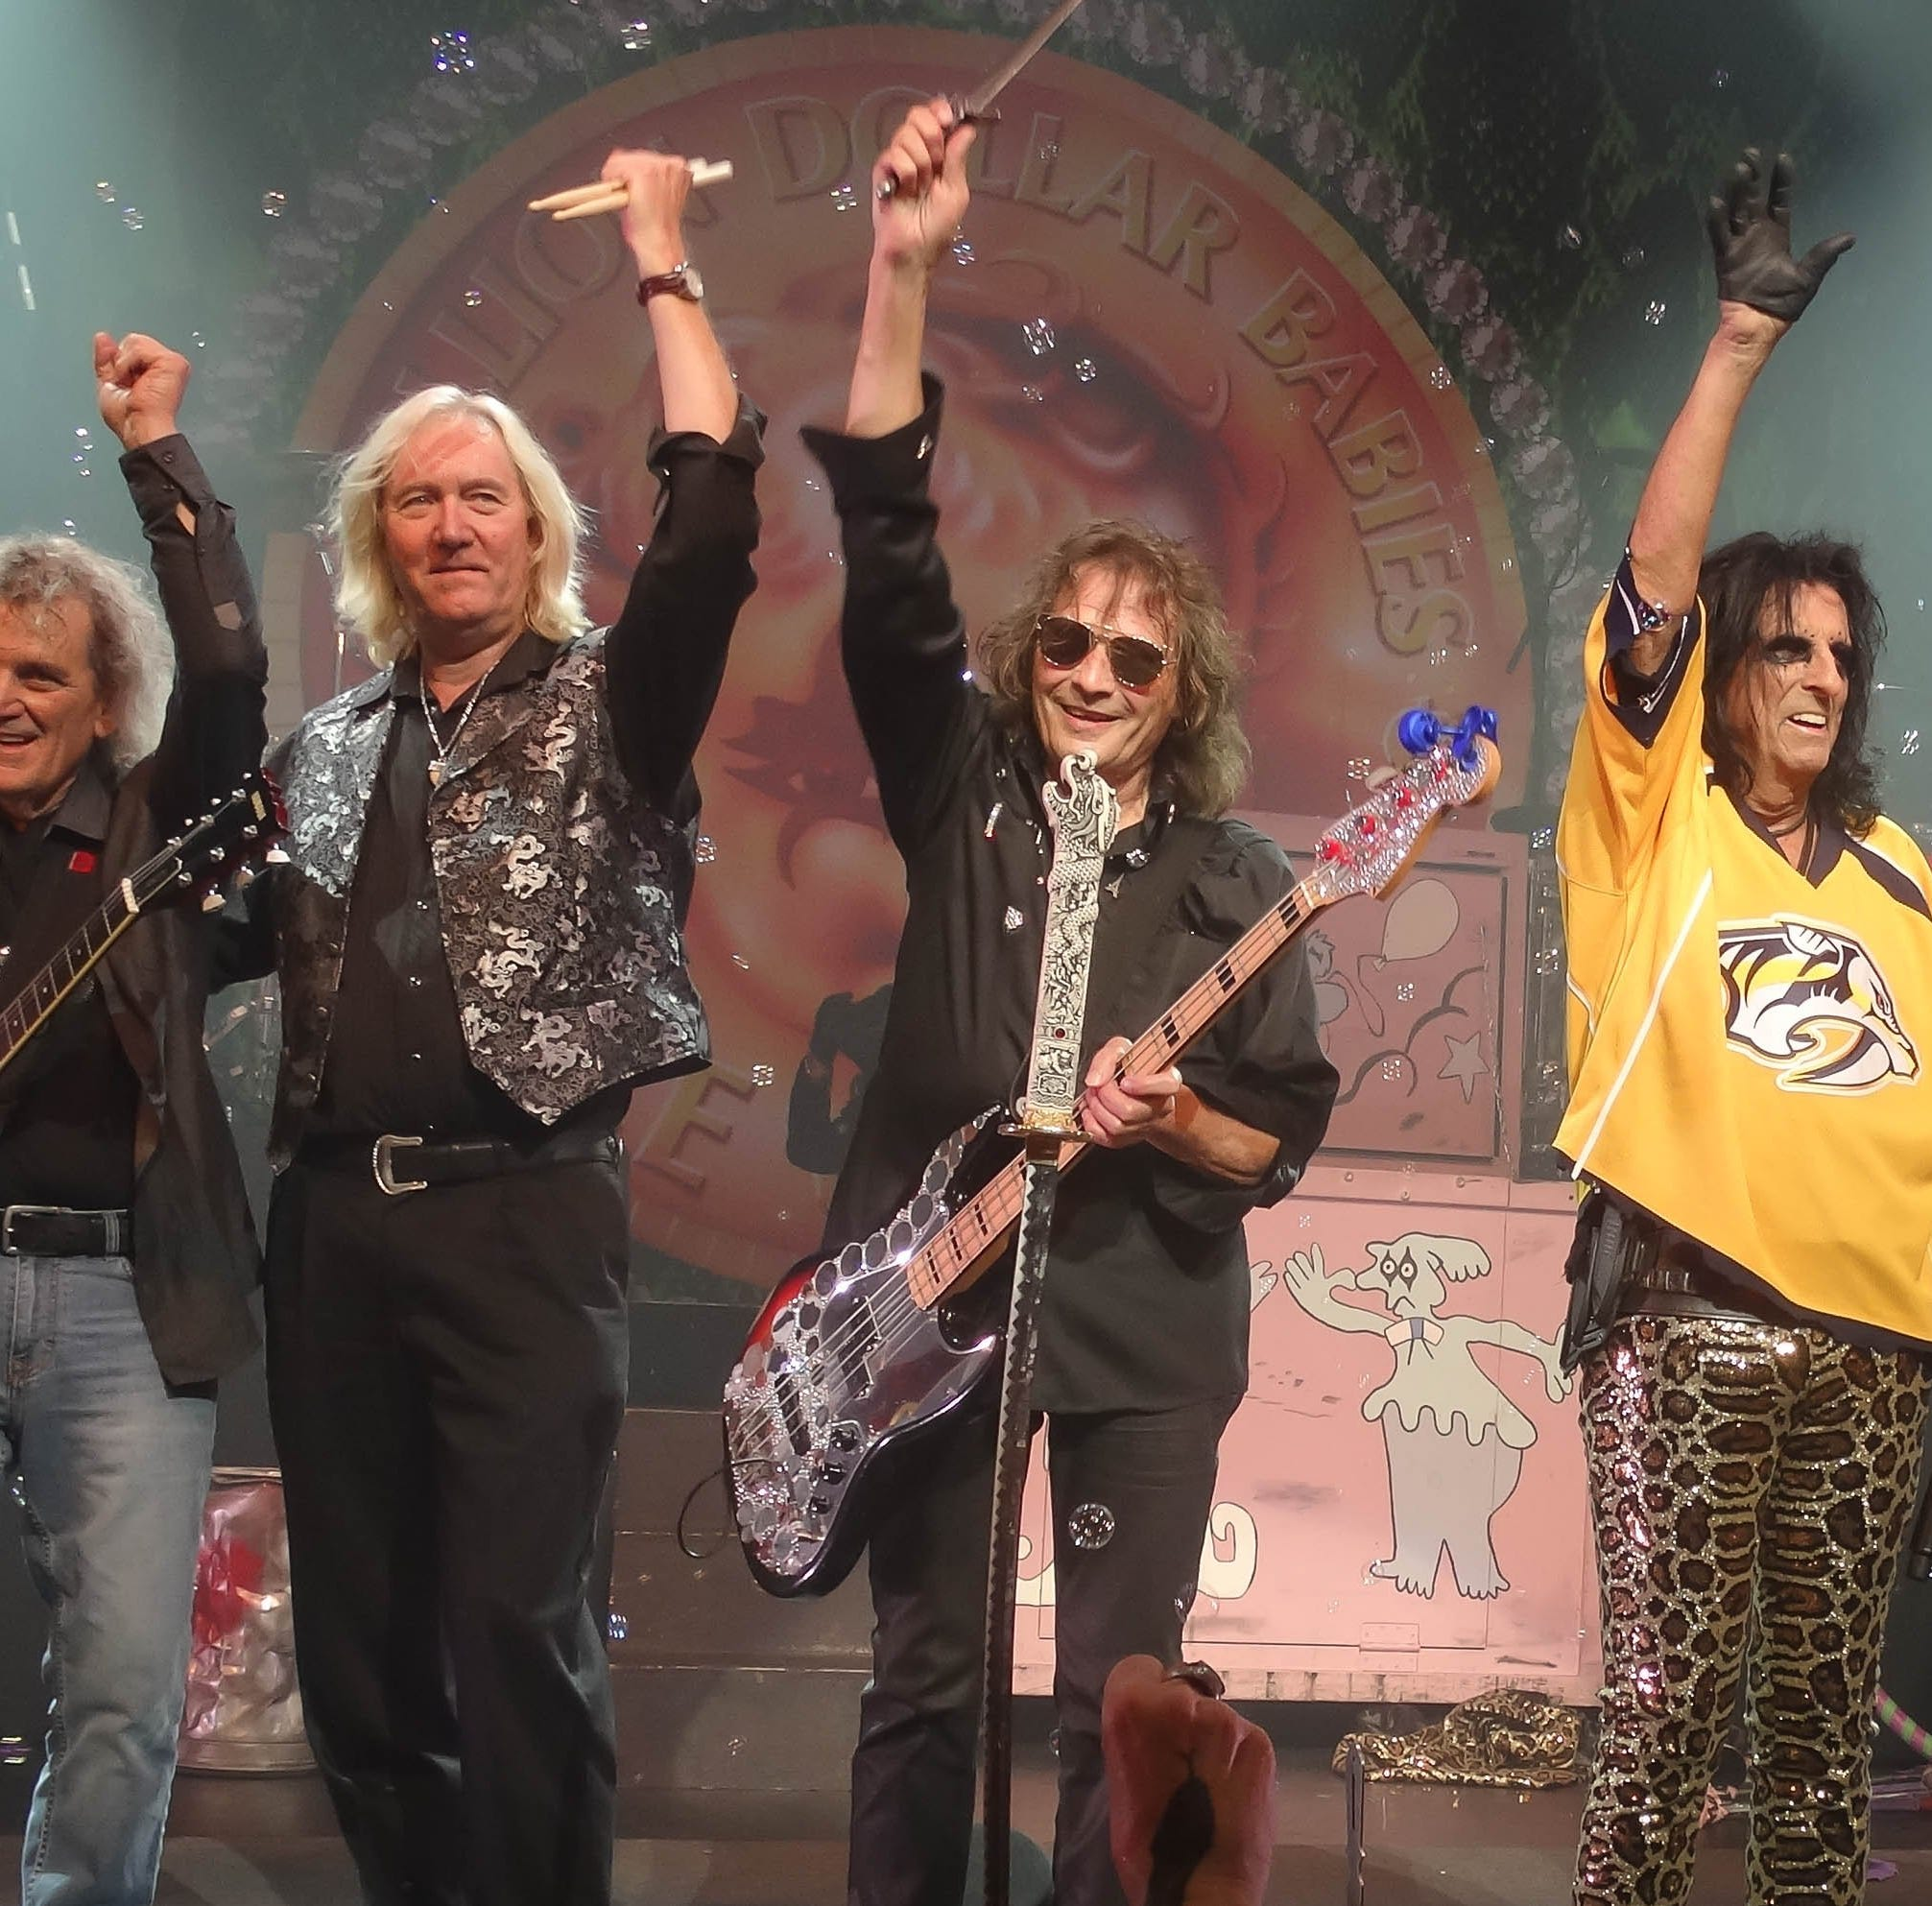 Alice Cooper band's off-the-cuff reunion recounted in 'Live from the Astroturf' documentary